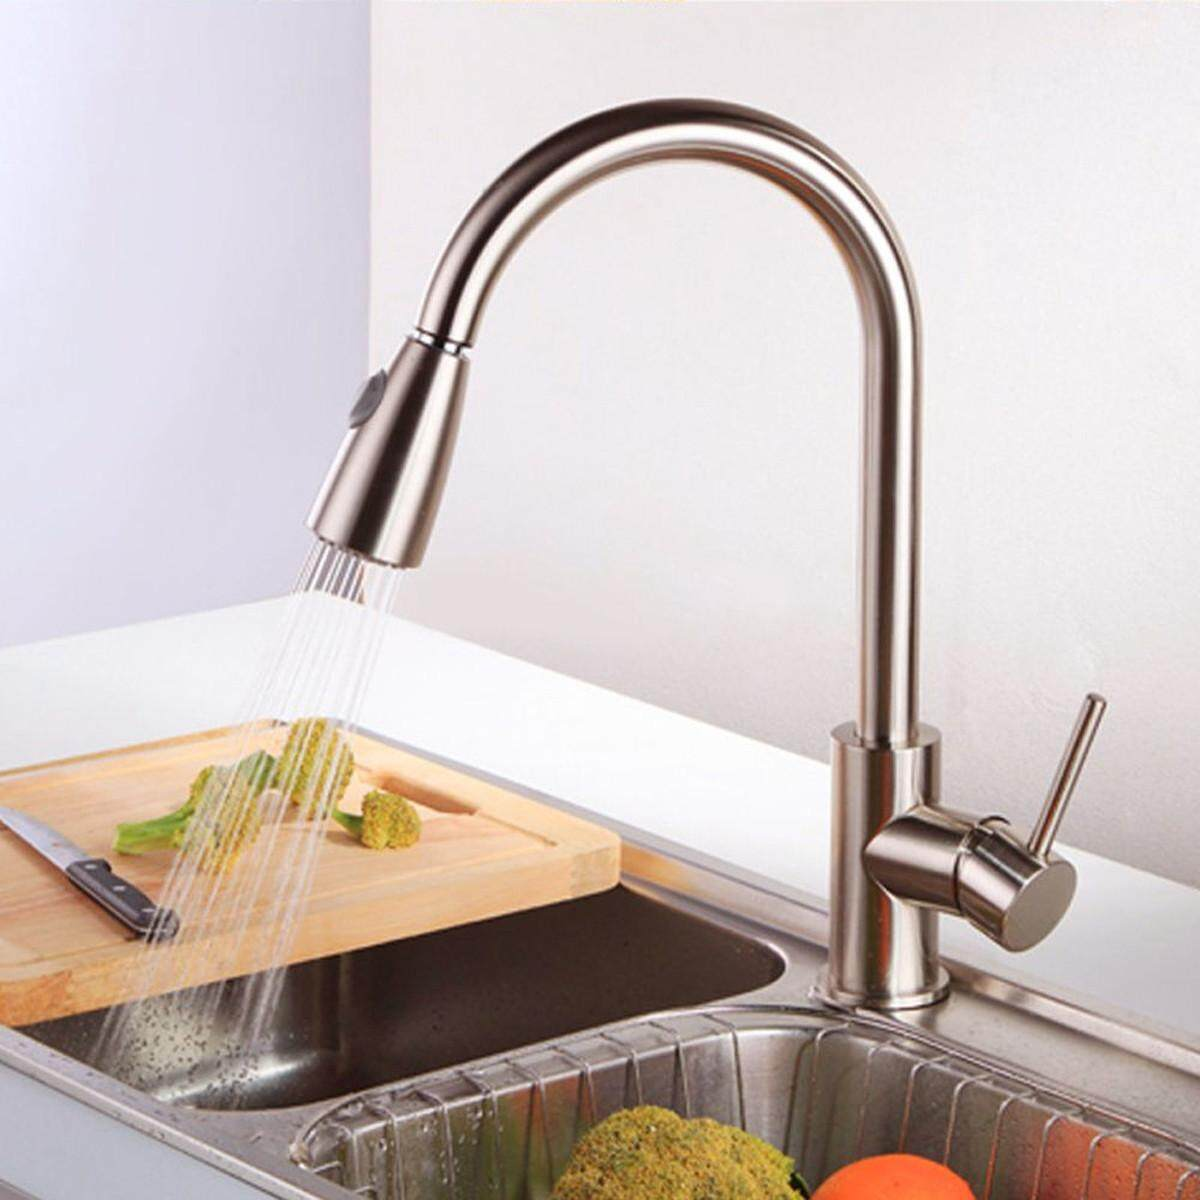 Brushed Steel Pull Down&Out Swivel Kitchen Faucet Basin Sink Spray Mixer Tap